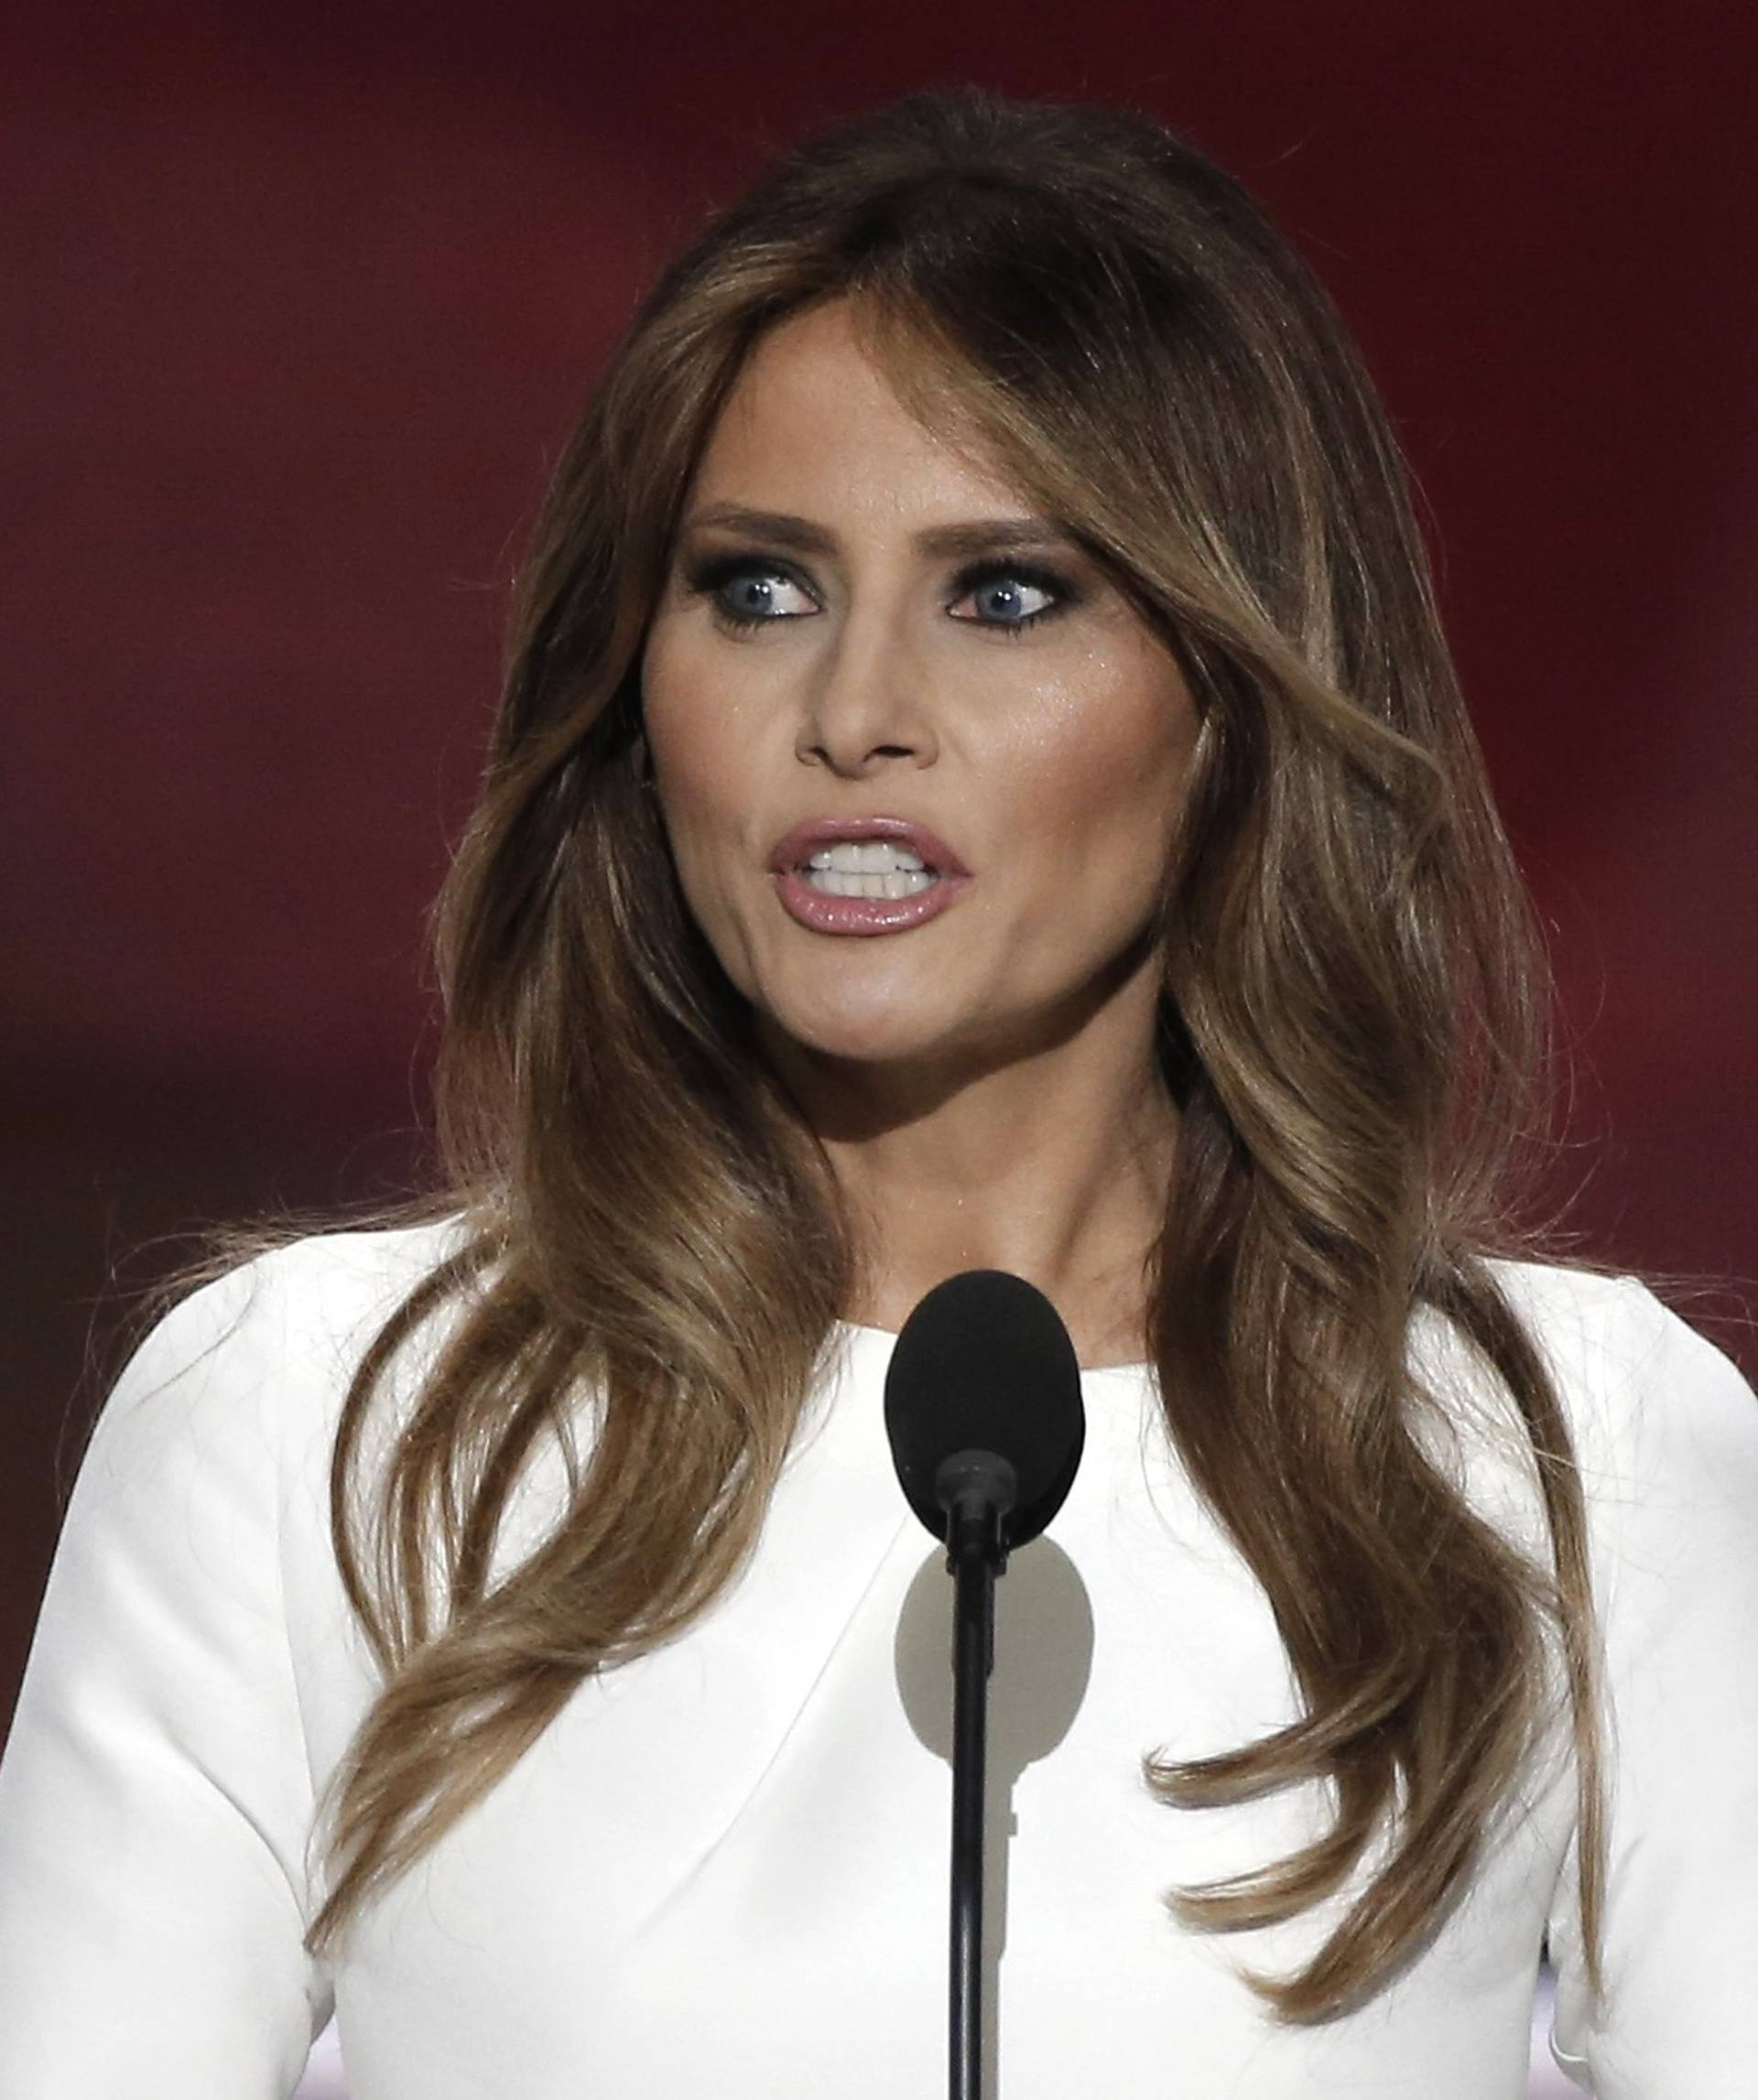 Melania Trump, wife of Republican U.S. presidential candidate Donald Trump, speaks at the Republican National Convention in Cleveland